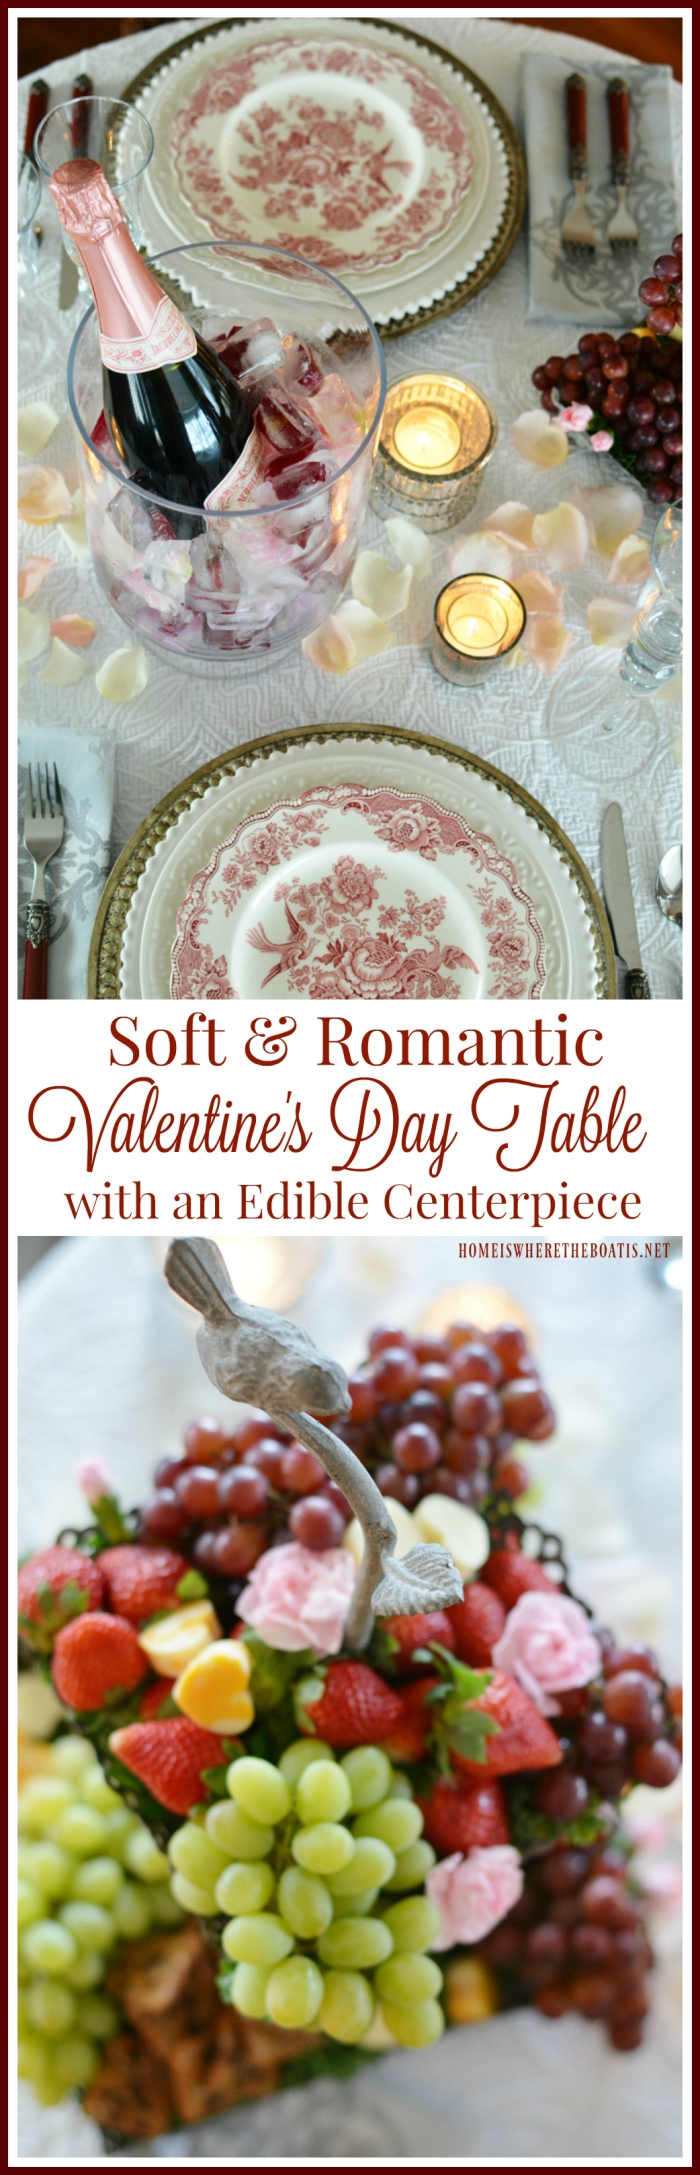 valentines-day-table